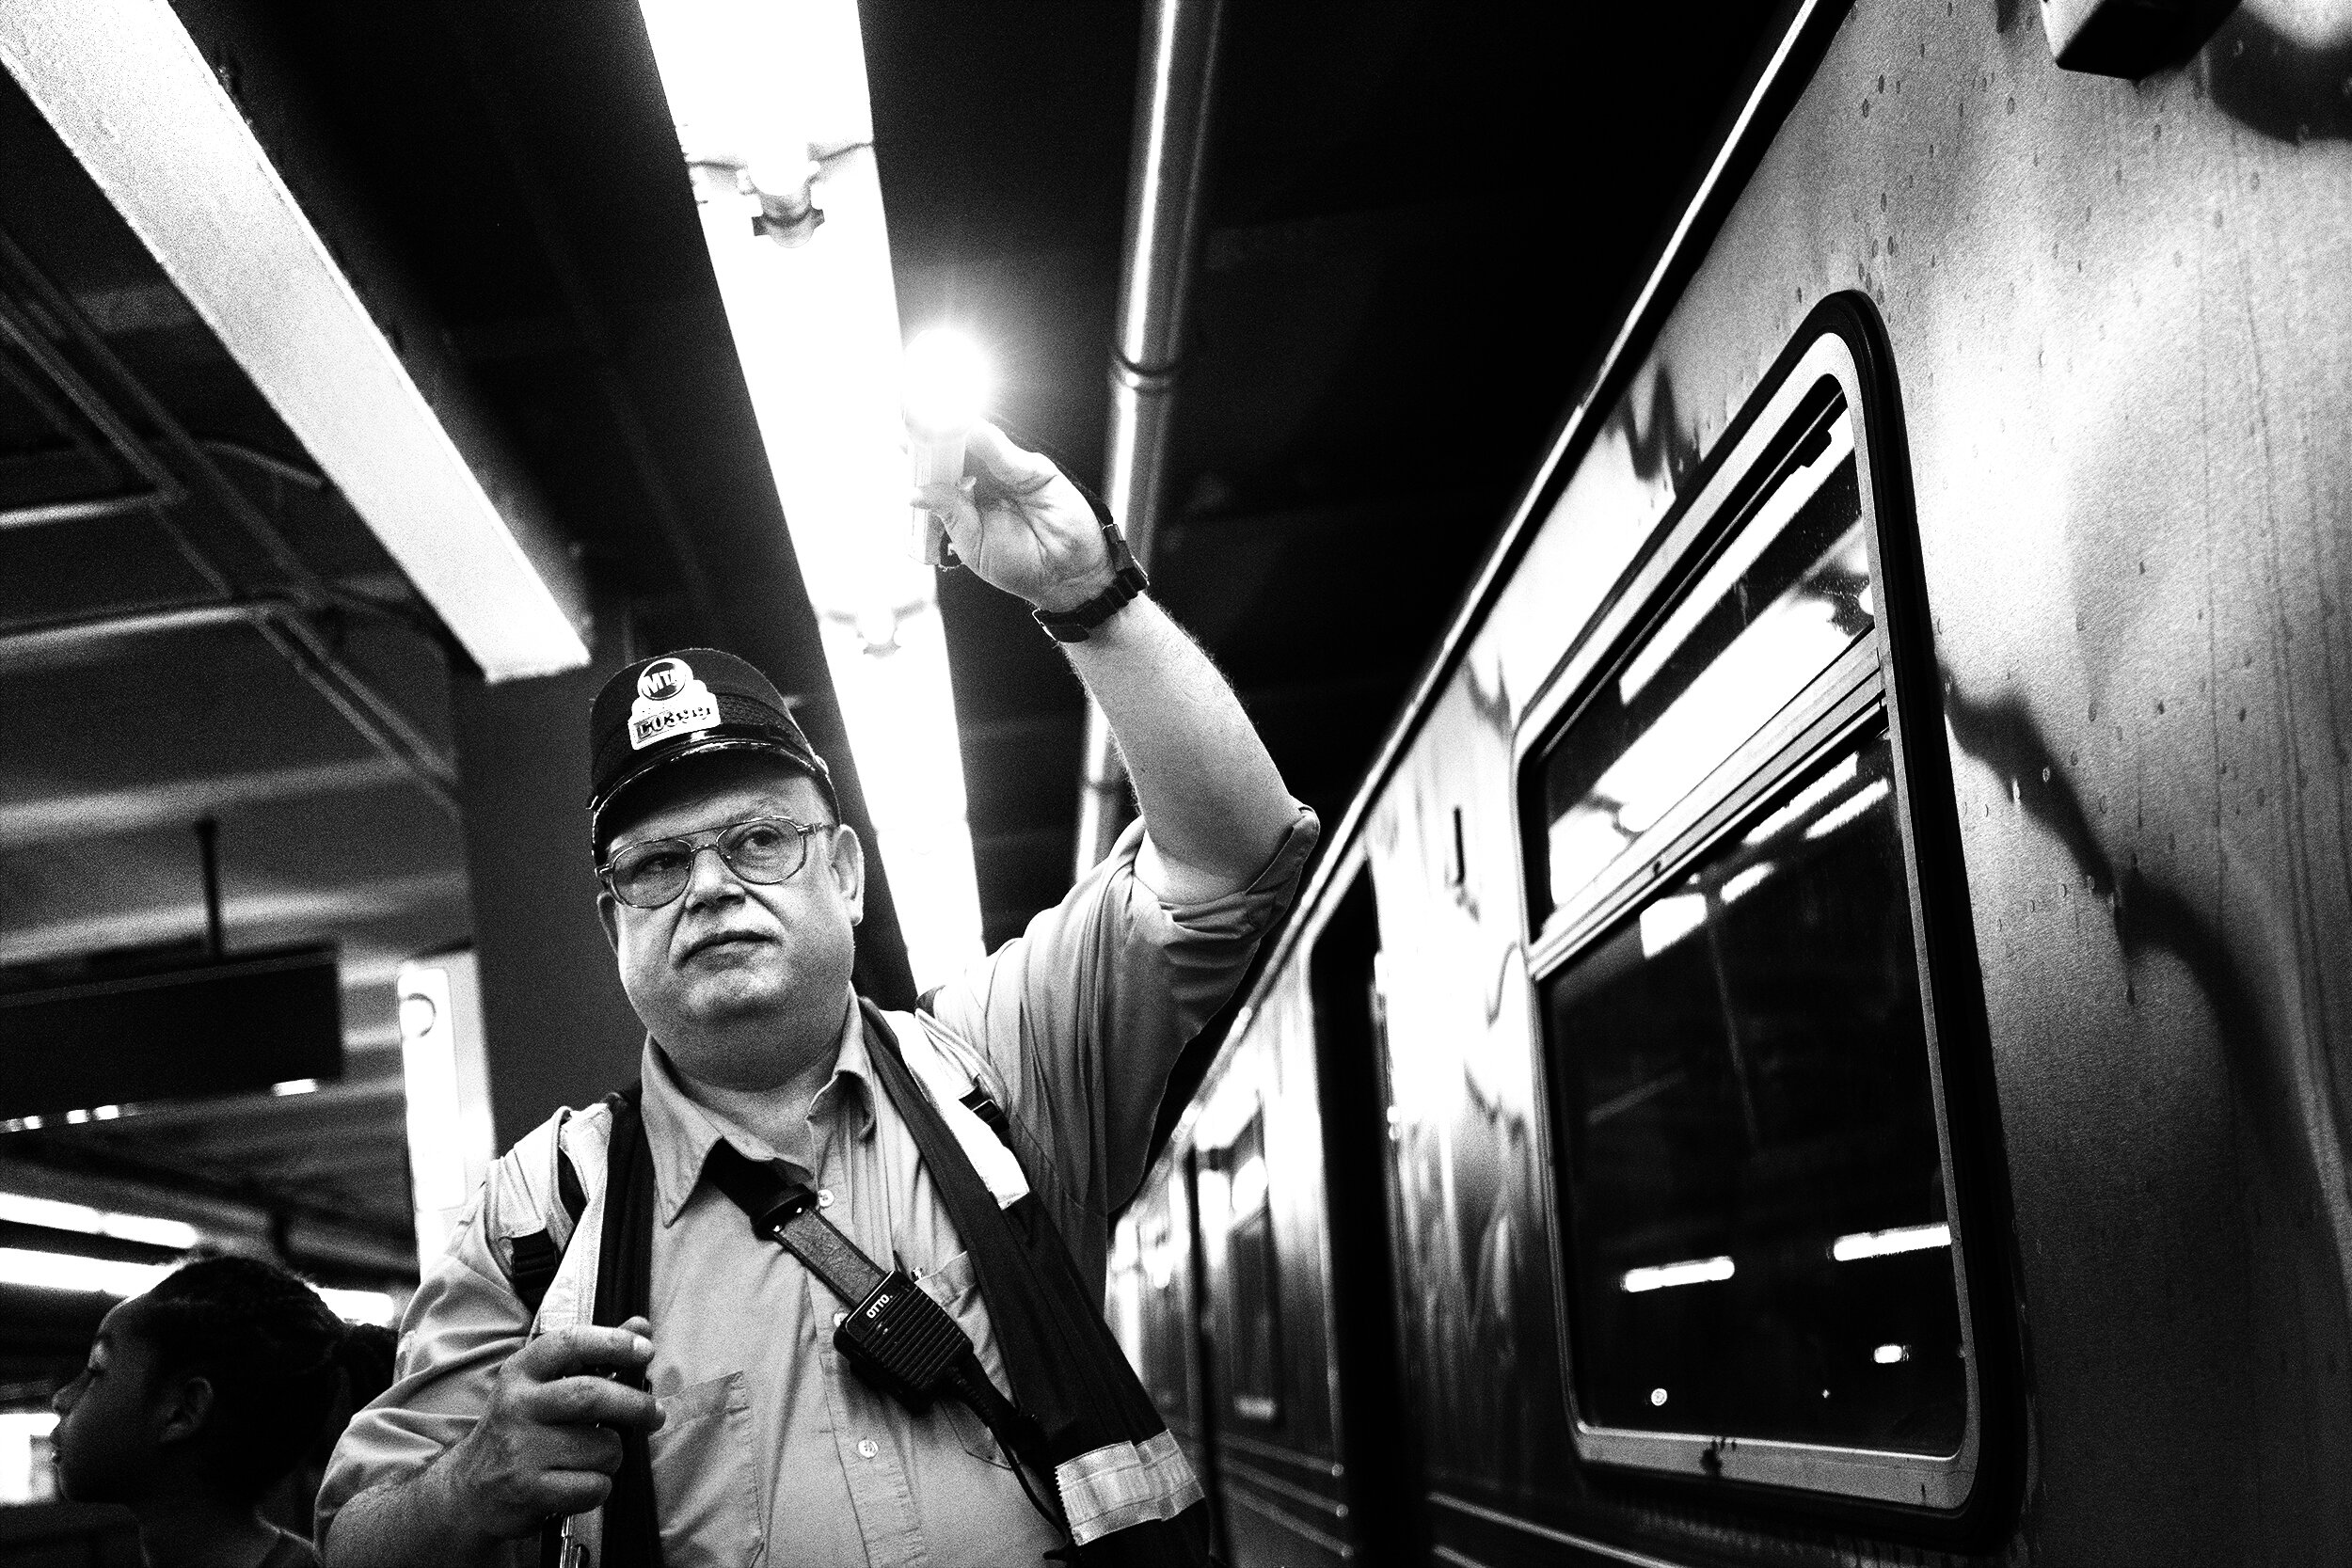 Brklyn_Subway_2018_Conductor_With_Flash_Light-009crp.jpg